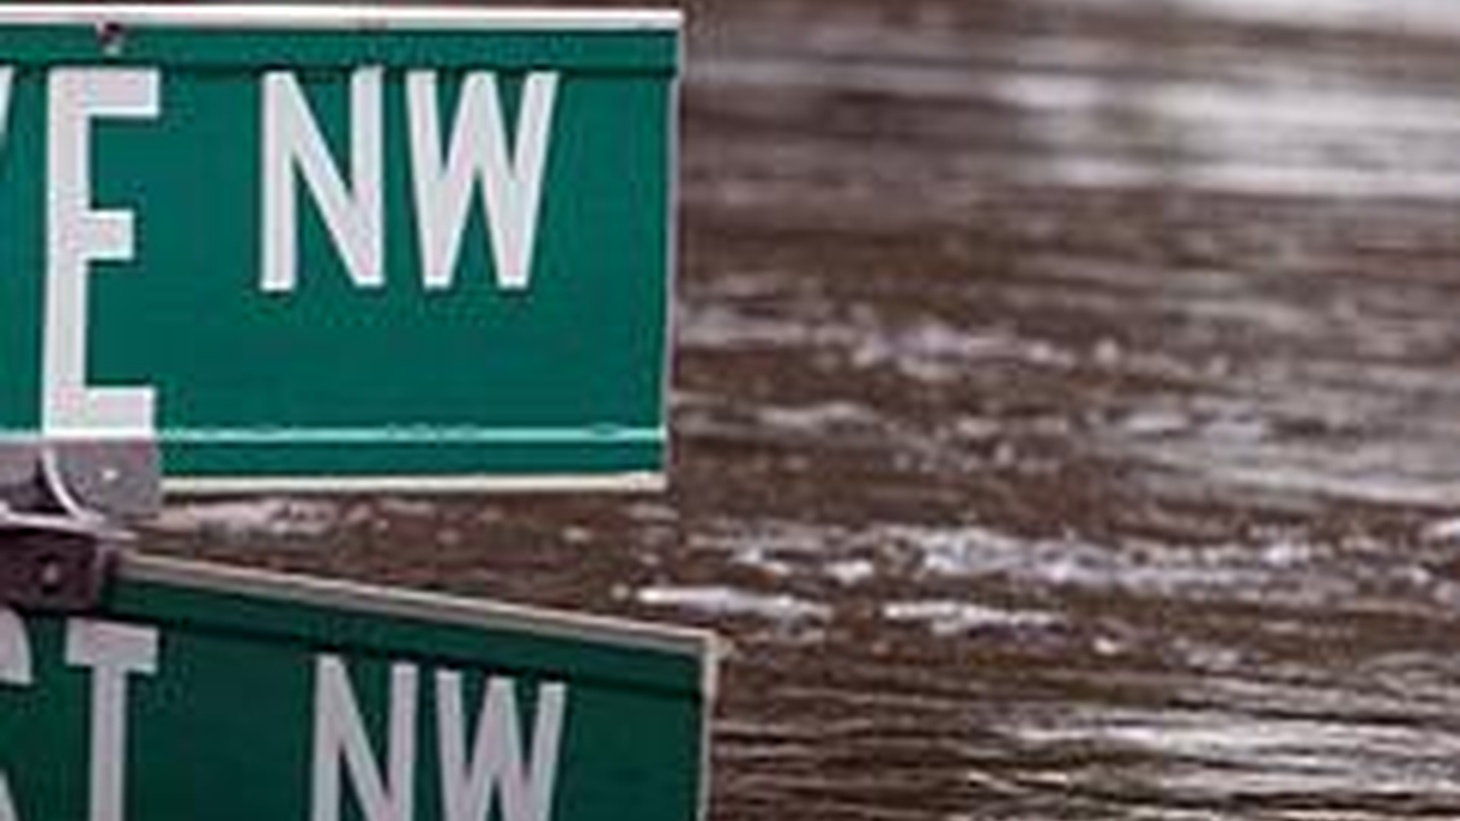 This year's Midwest rainfall and flooding is the worst since 1993, which was the worst in living memory up until then. Has recent development guaranteed that the devastation will be more extensive than it needed to be? In Britain, Bush gets agreements to increase pressure on Iran, and same-sex marriage in California.